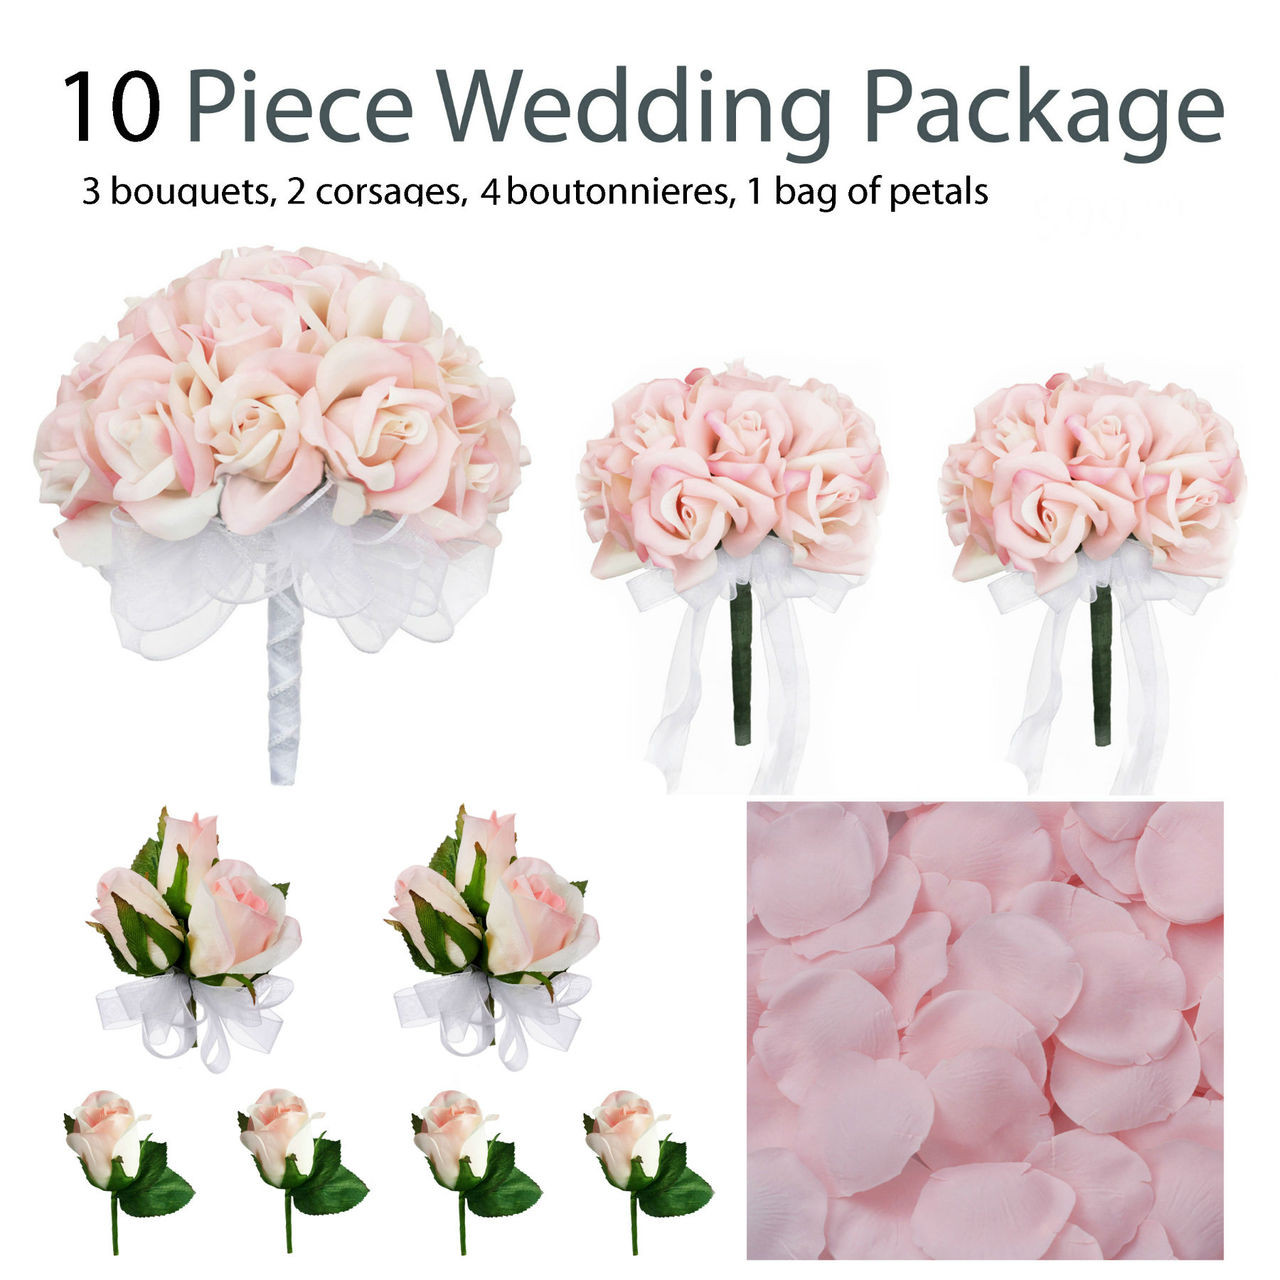 10 Piece Pink Silk Wedding Flower Package